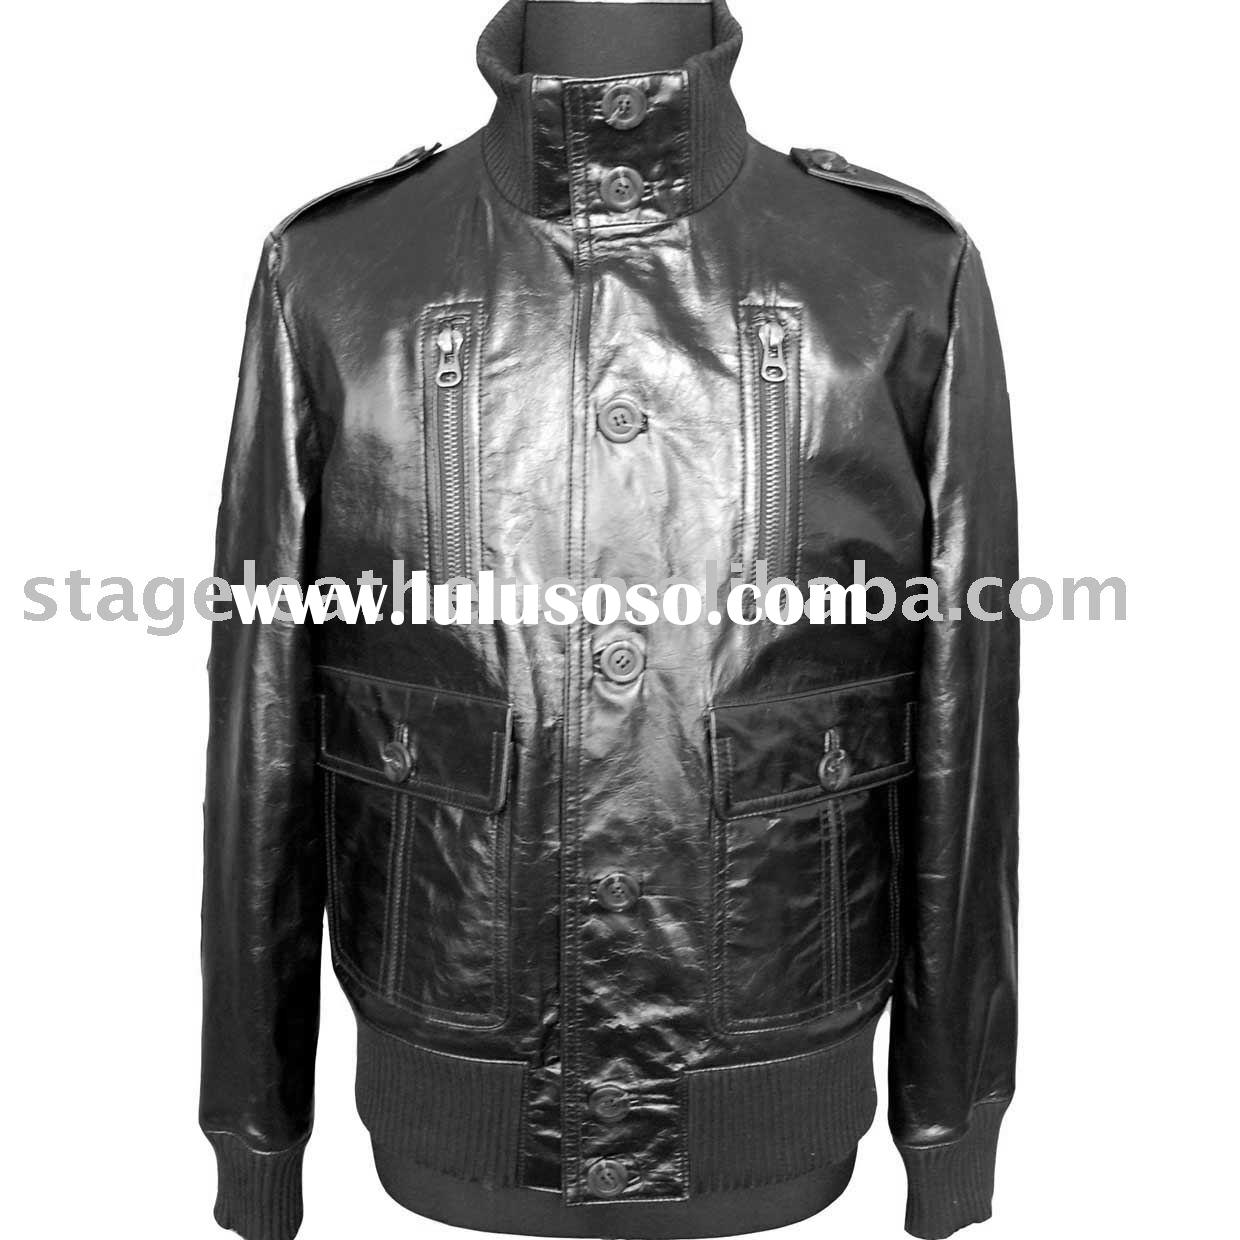 Men's shiny cow leather jacket with YKK zippers on the front part